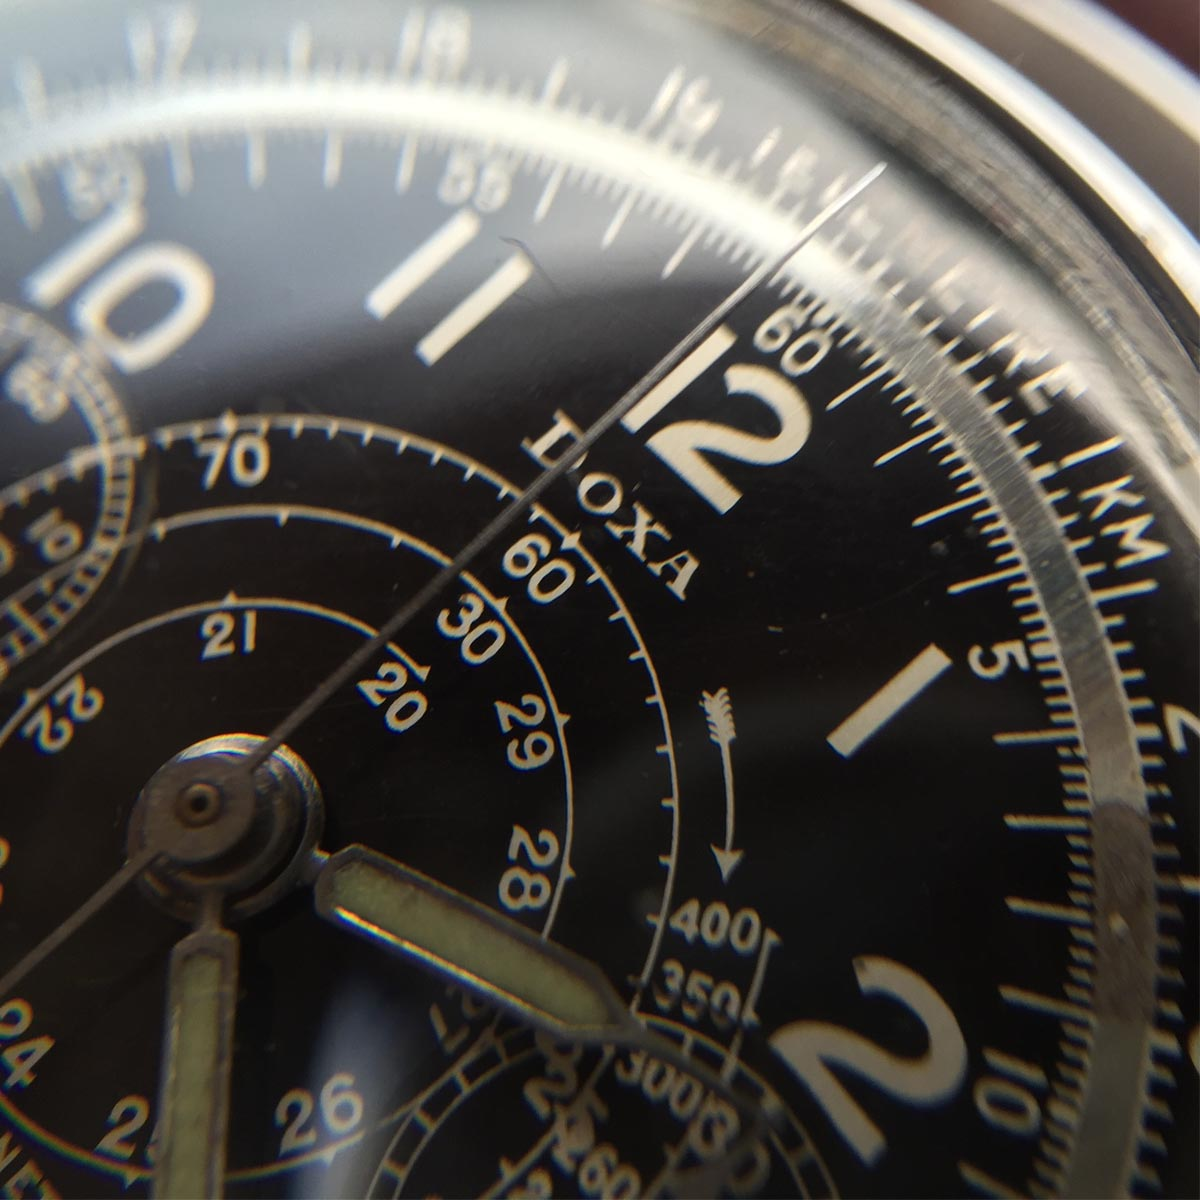 The Collector's Series - Paul Maudsley Phillips Watches - Doxa Telemeter - 9